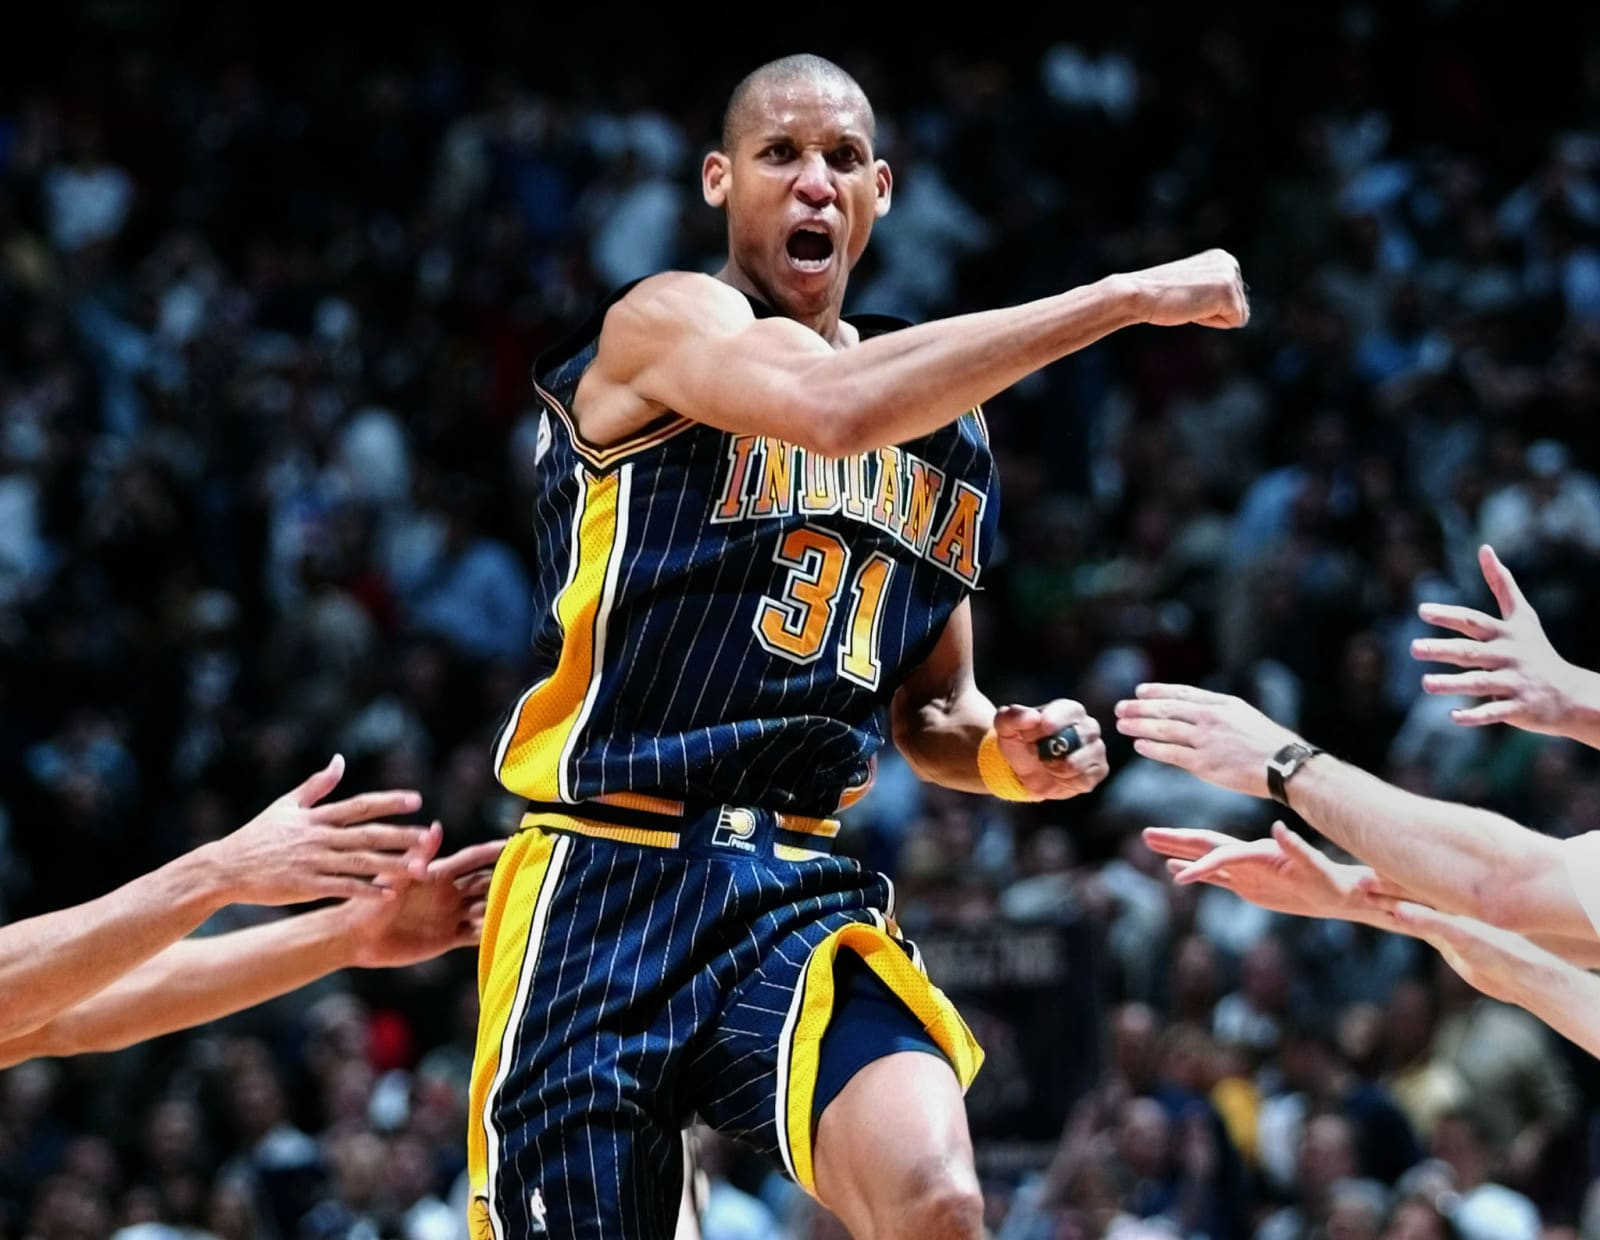 Indiana Pacers news: Reggie Miller jersey makes appearance on